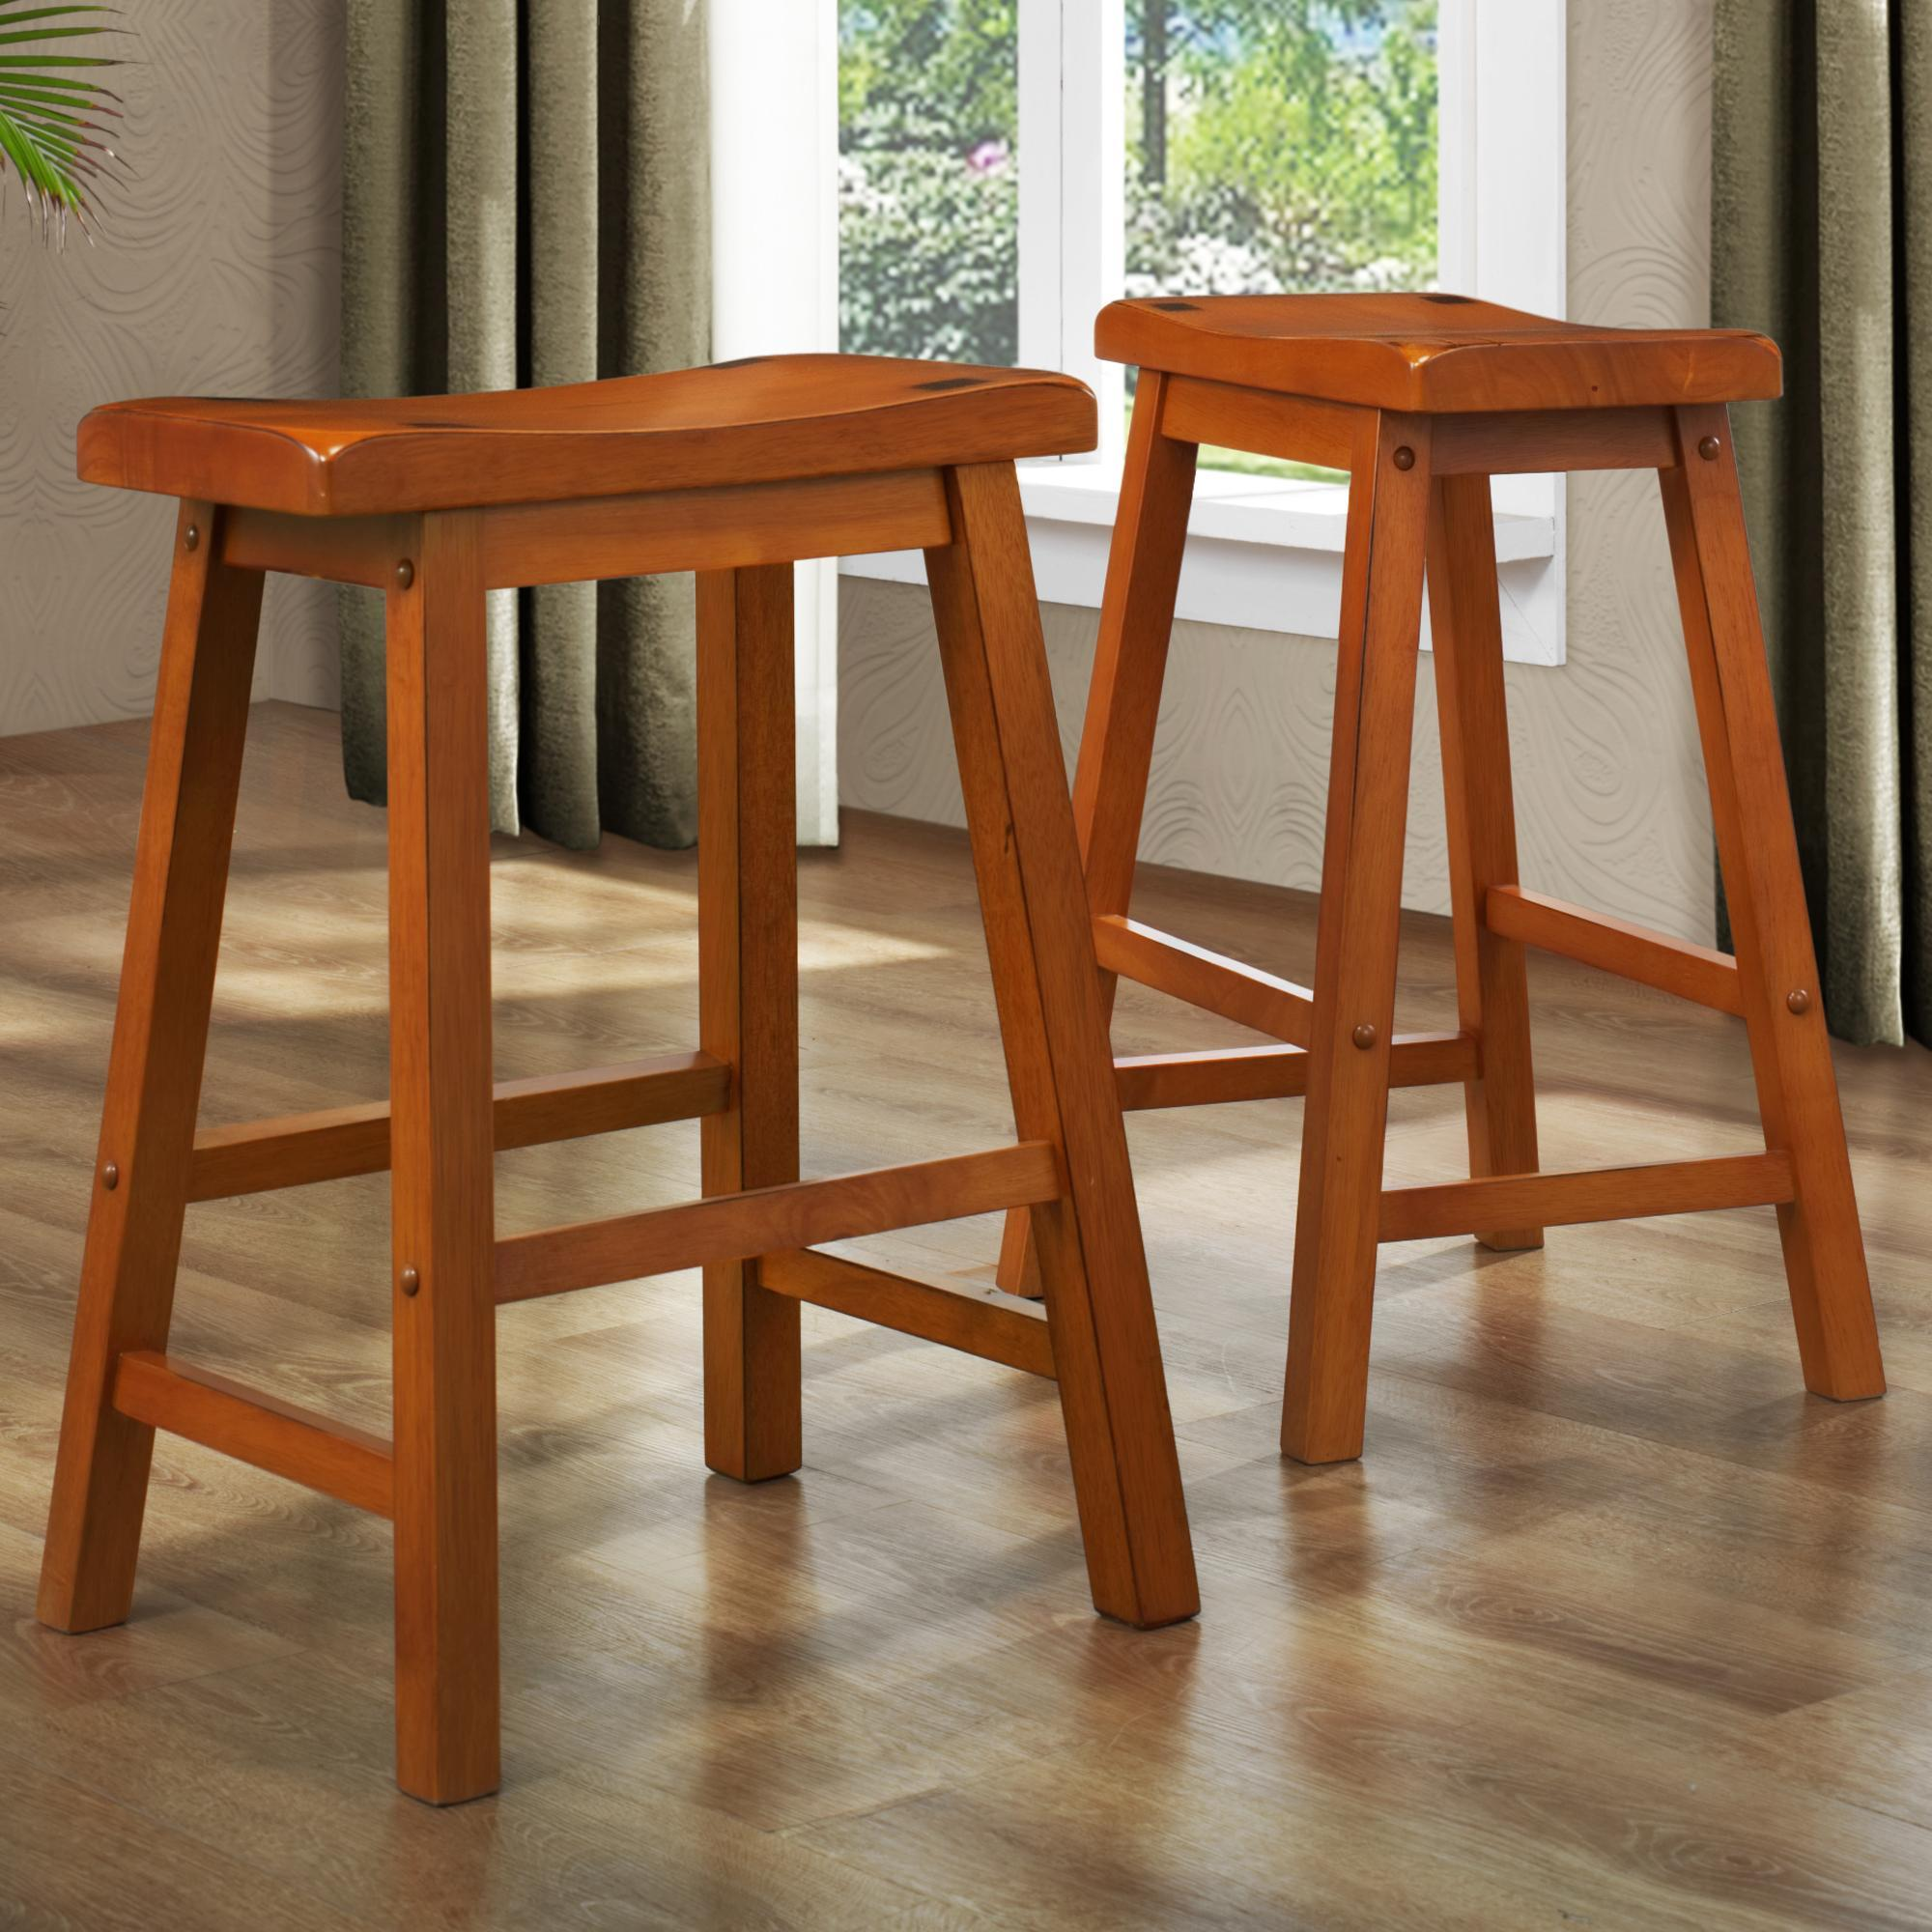 5302 24 Inch Stool by Homelegance at Simply Home by Lindy's